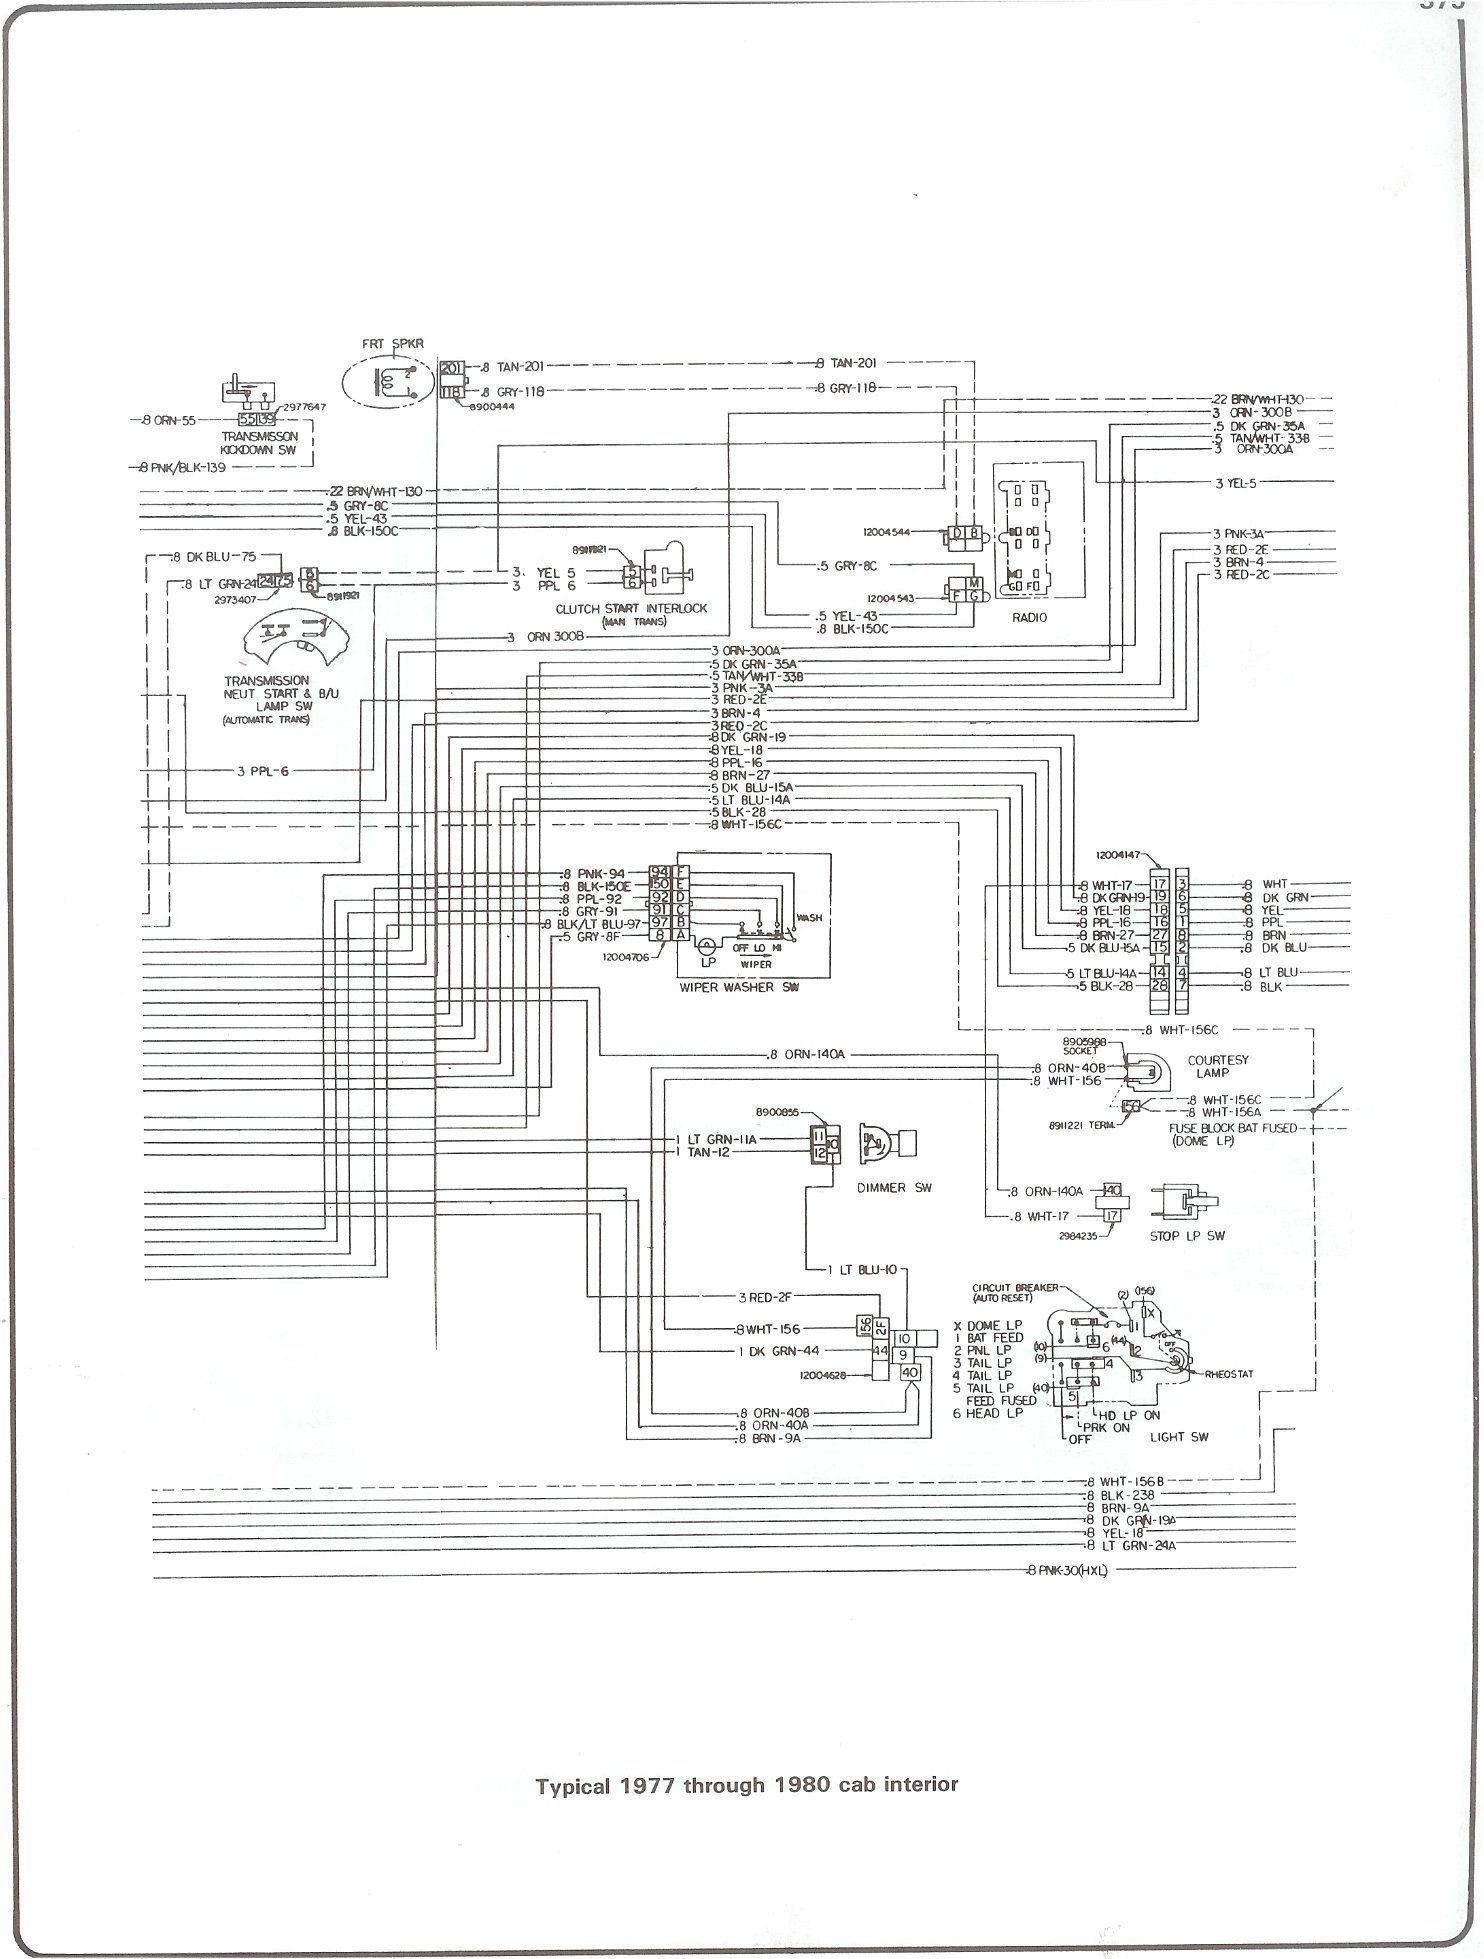 1977 Chevy C10 Wiring Diagrams Data Diagram 73 Corvette Complete 87 1972 Harness